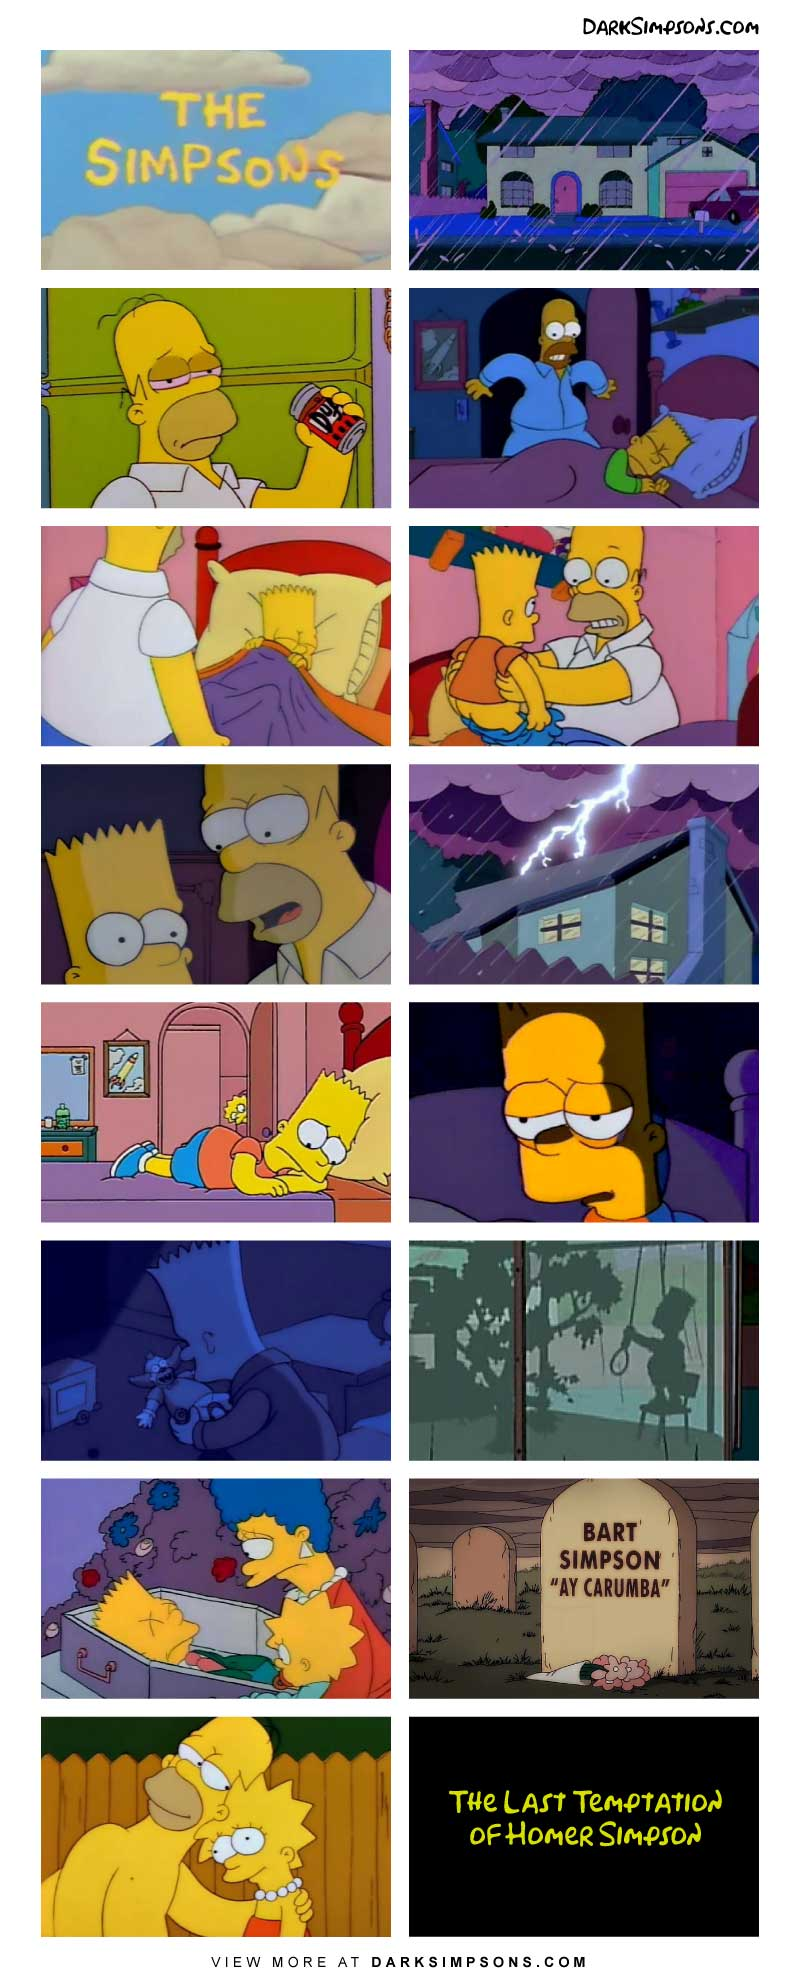 On a cloudy stormy night, Homer is alone with the children. After having a few dozen beers, Homer does something terrible to Bart, and it has deadly consequences. But fear not, he has a second chance at it with Lisa.